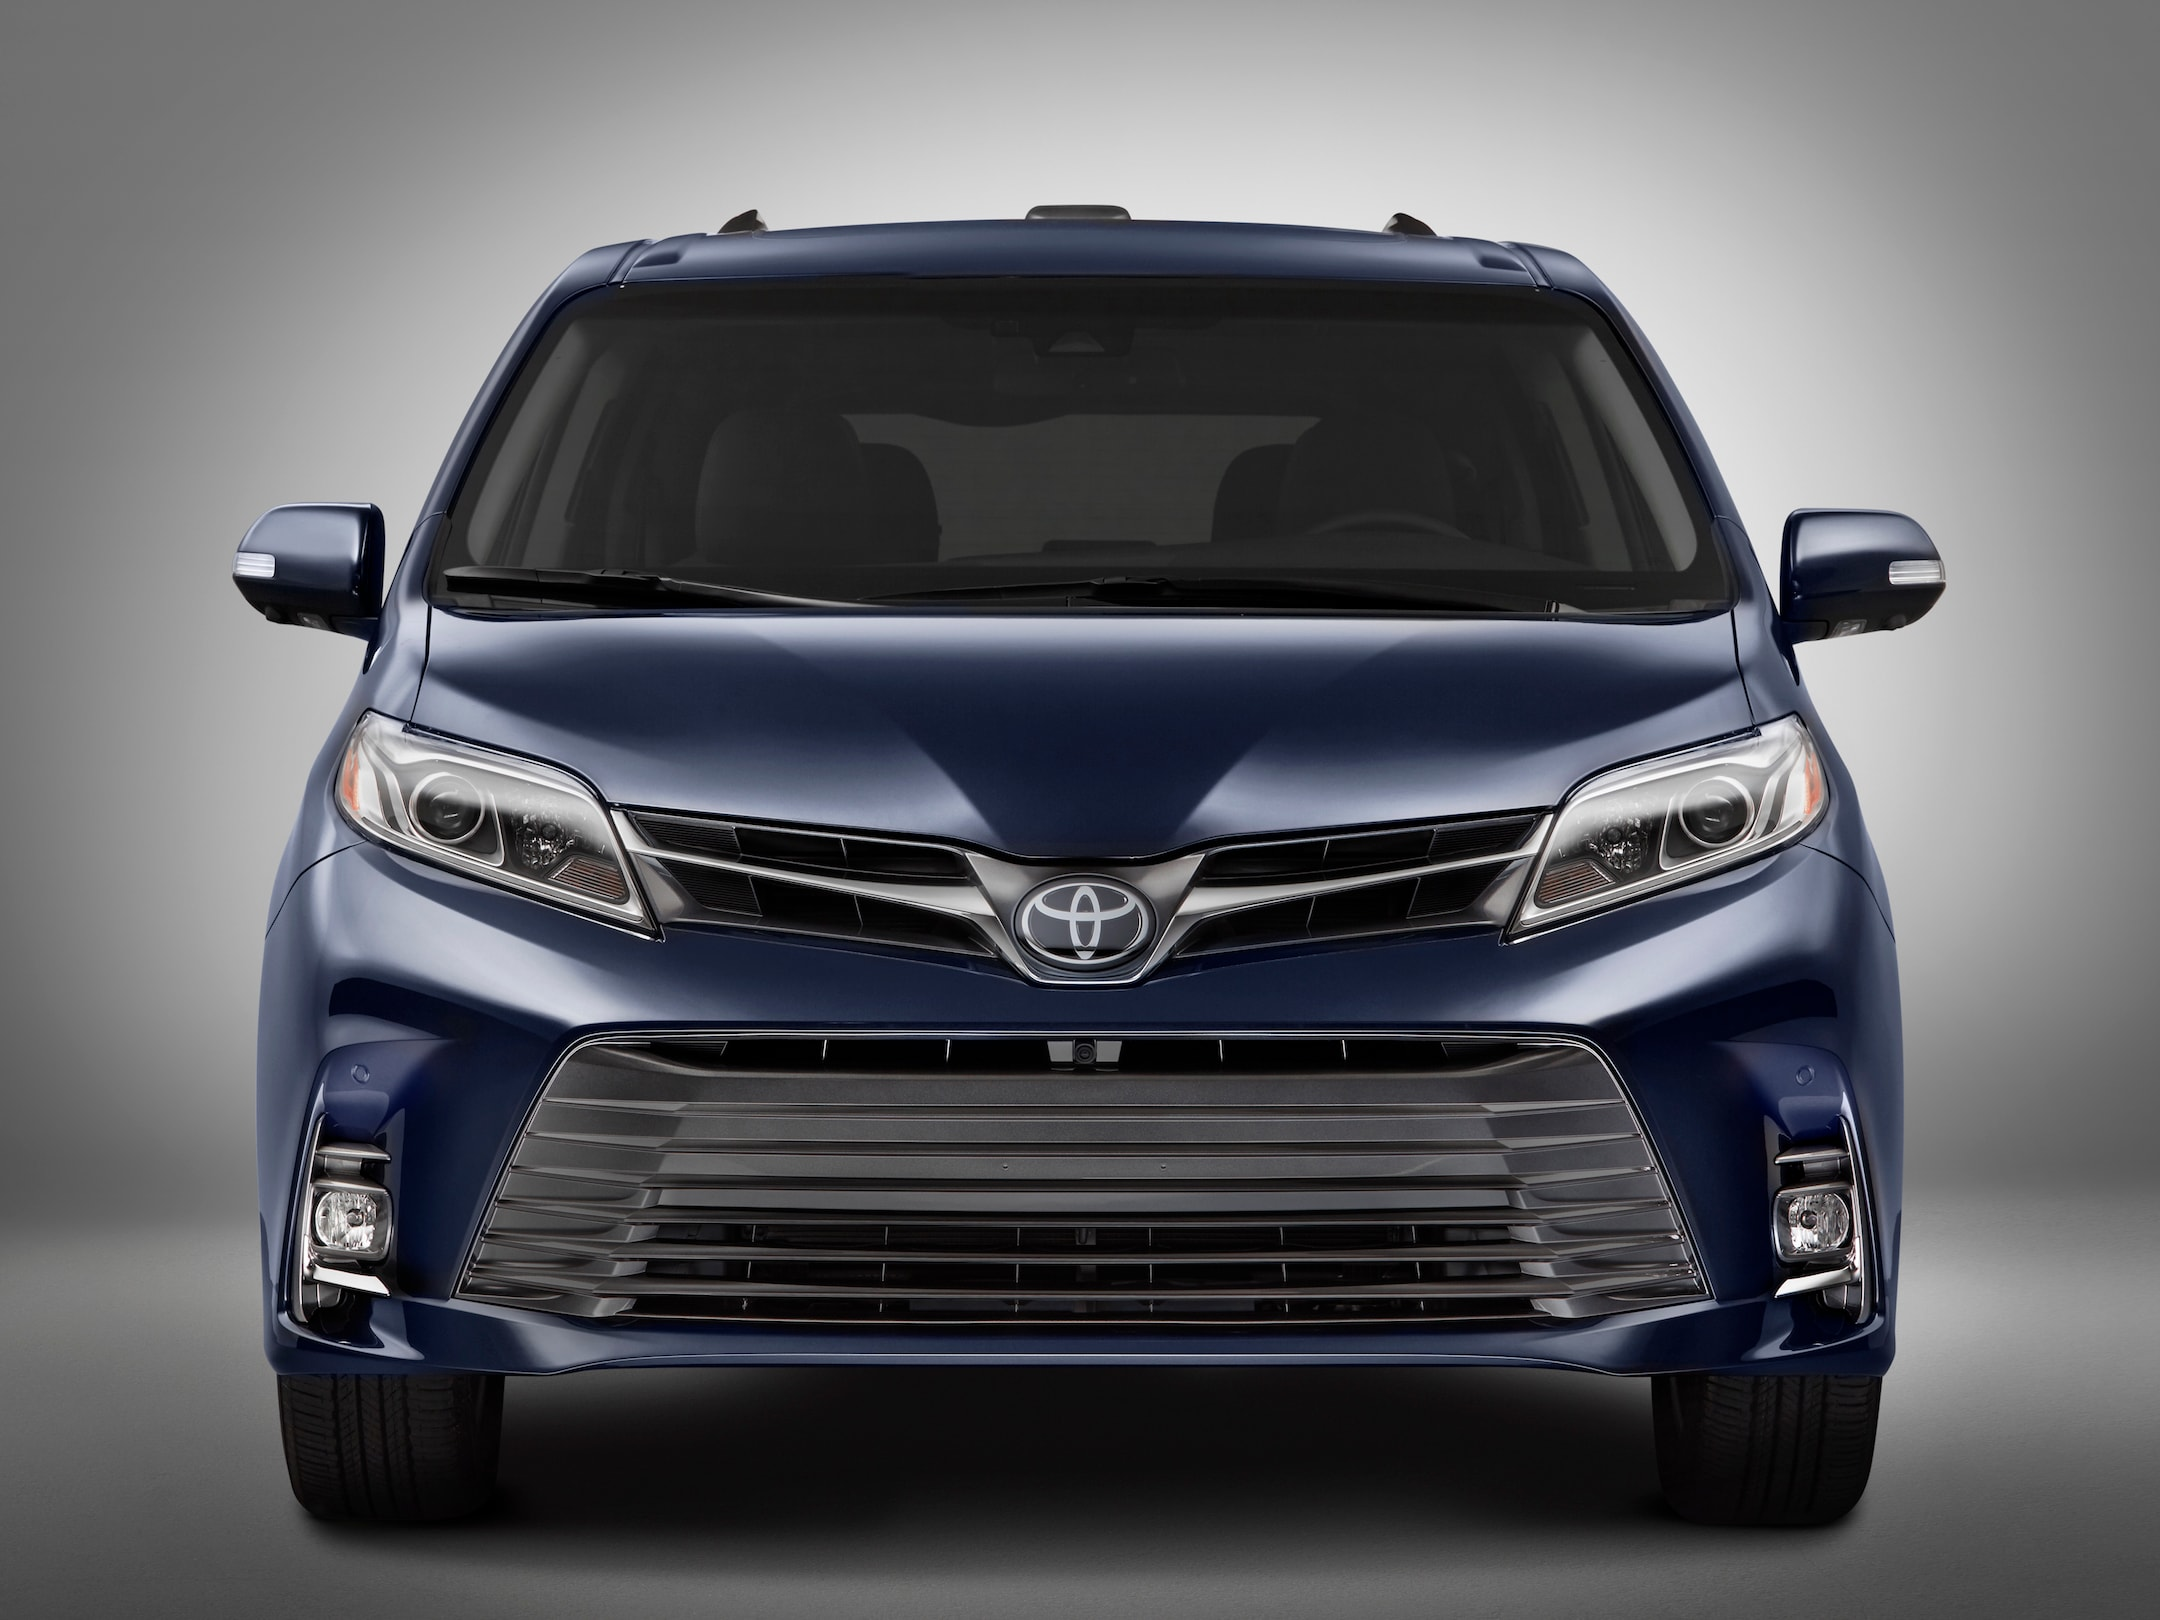 2018 toyota sienna coming soon to little rock arkansas steve landers toyota